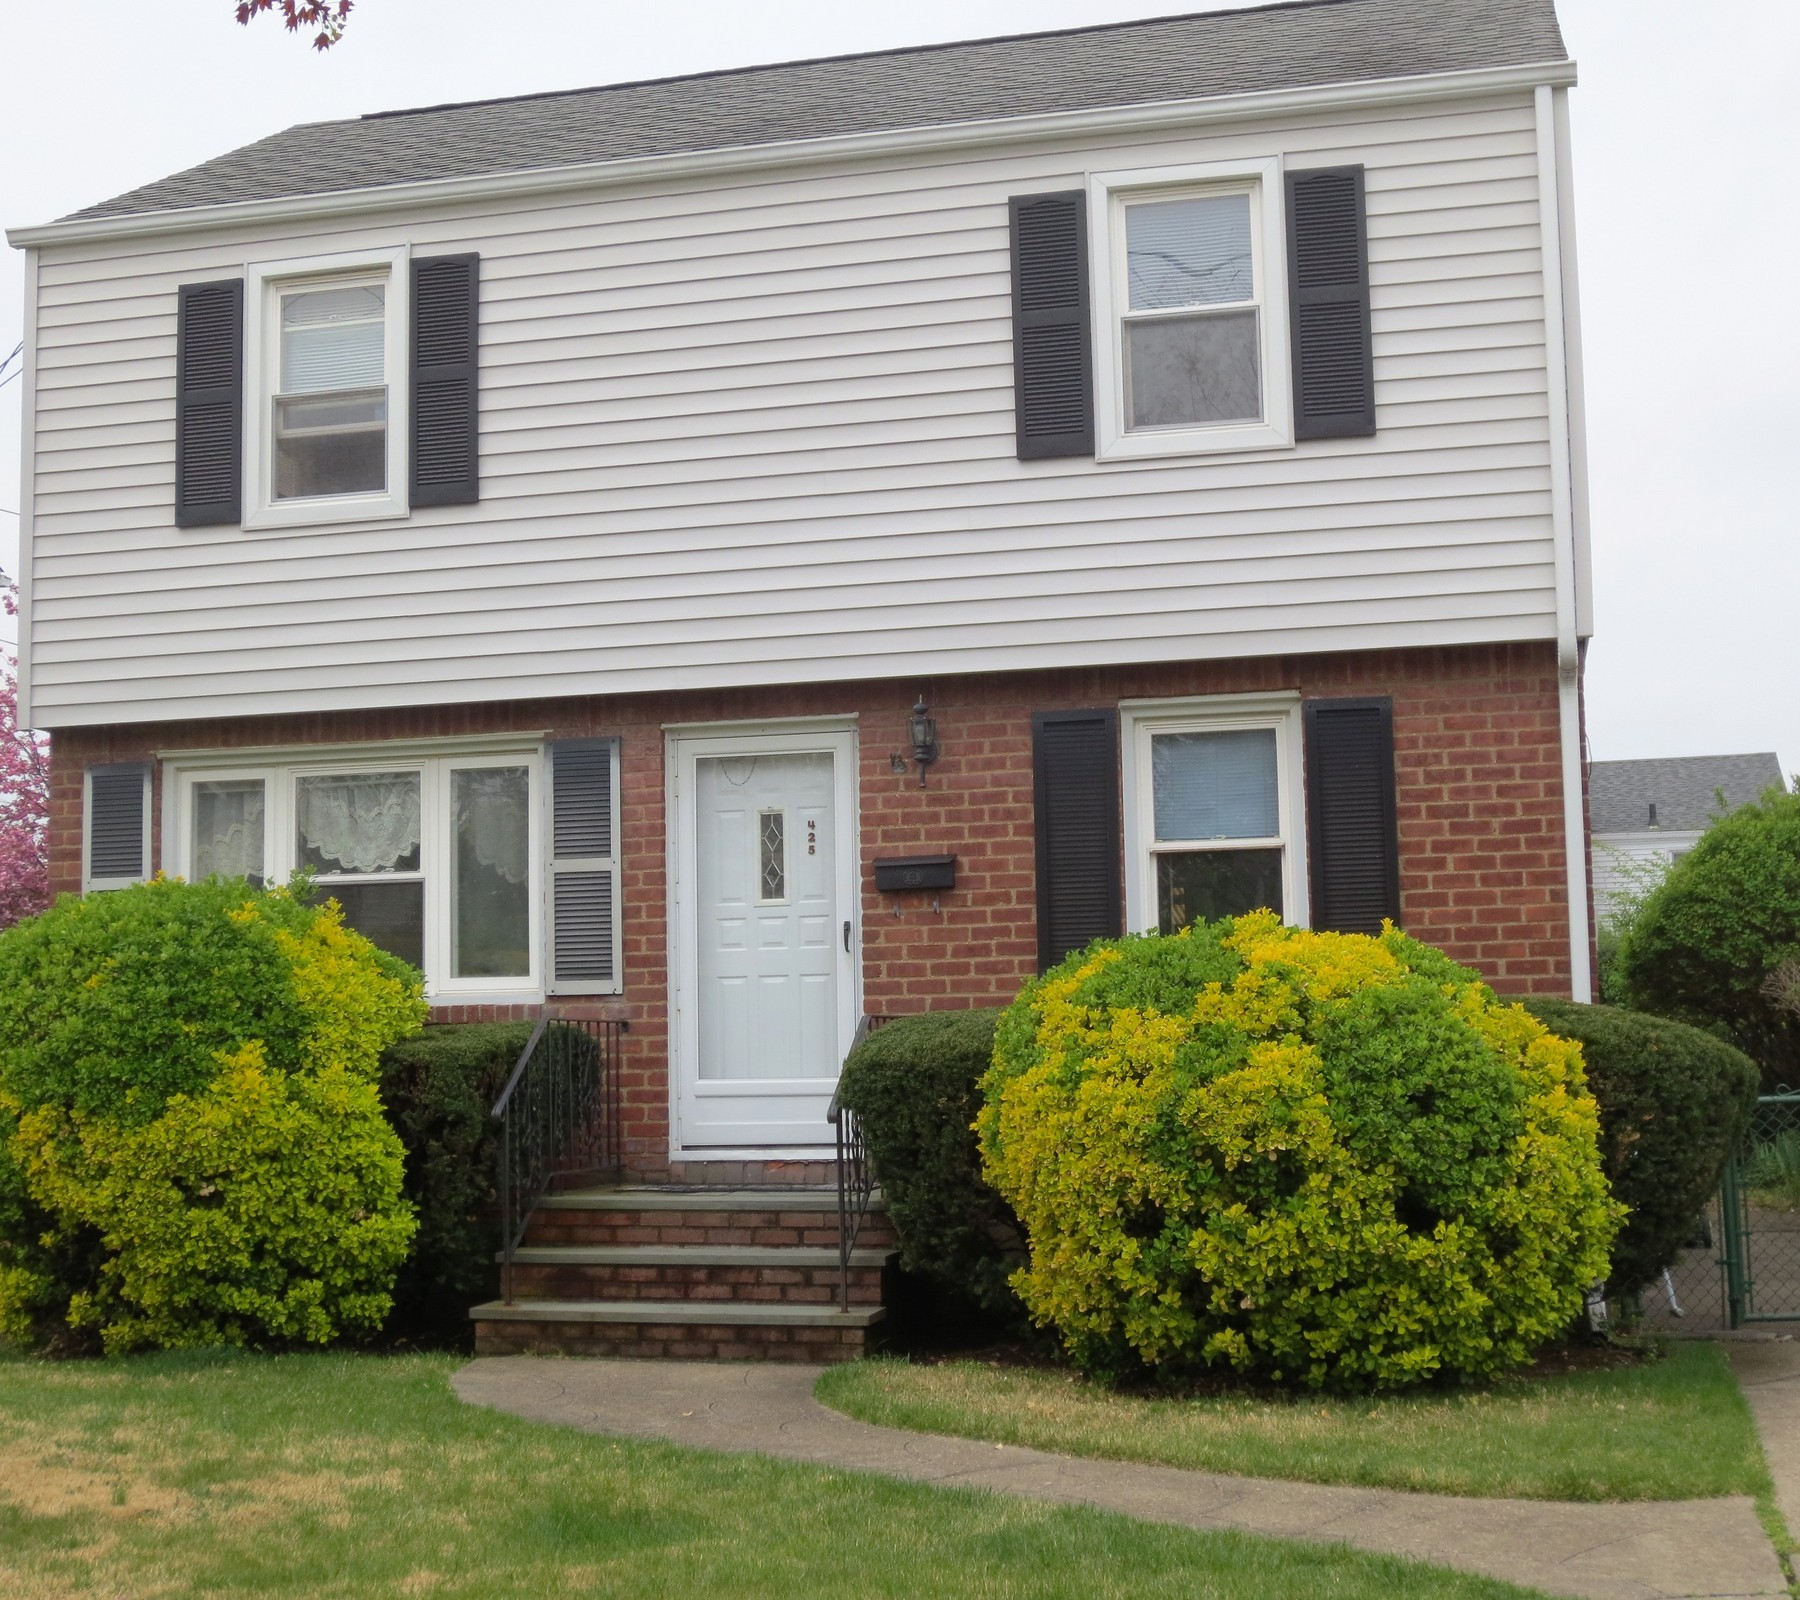 Single Family Home for Sale at Colonial 425 Emory Rd Mineola, New York, 11501 United States